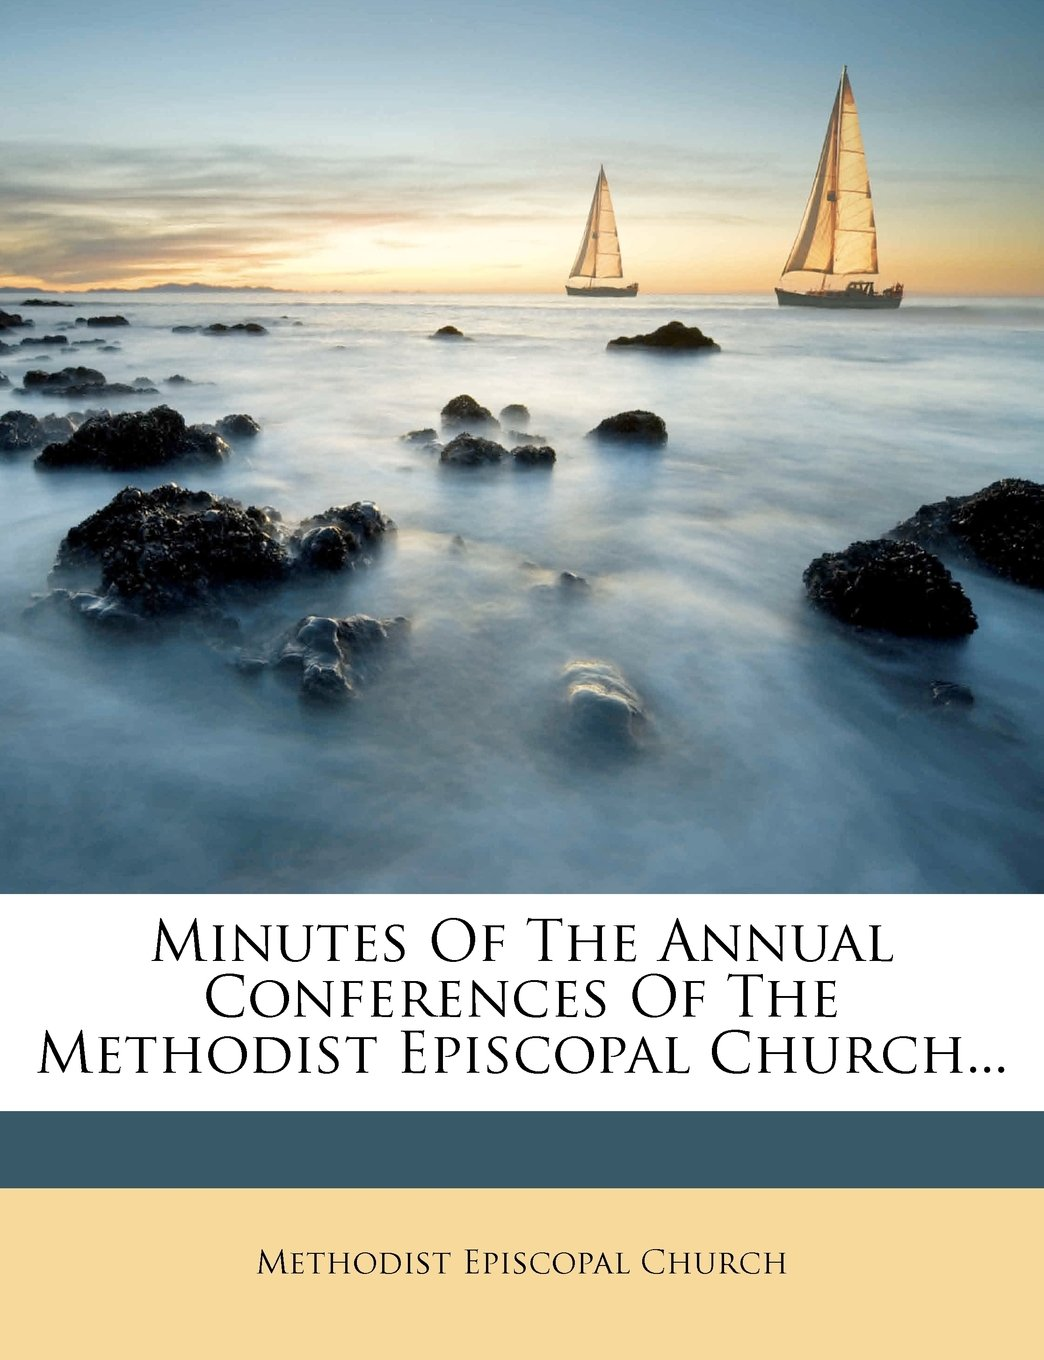 Minutes Of The Annual Conferences Of The Methodist Episcopal Church, Spring Conferences of 1913 pdf